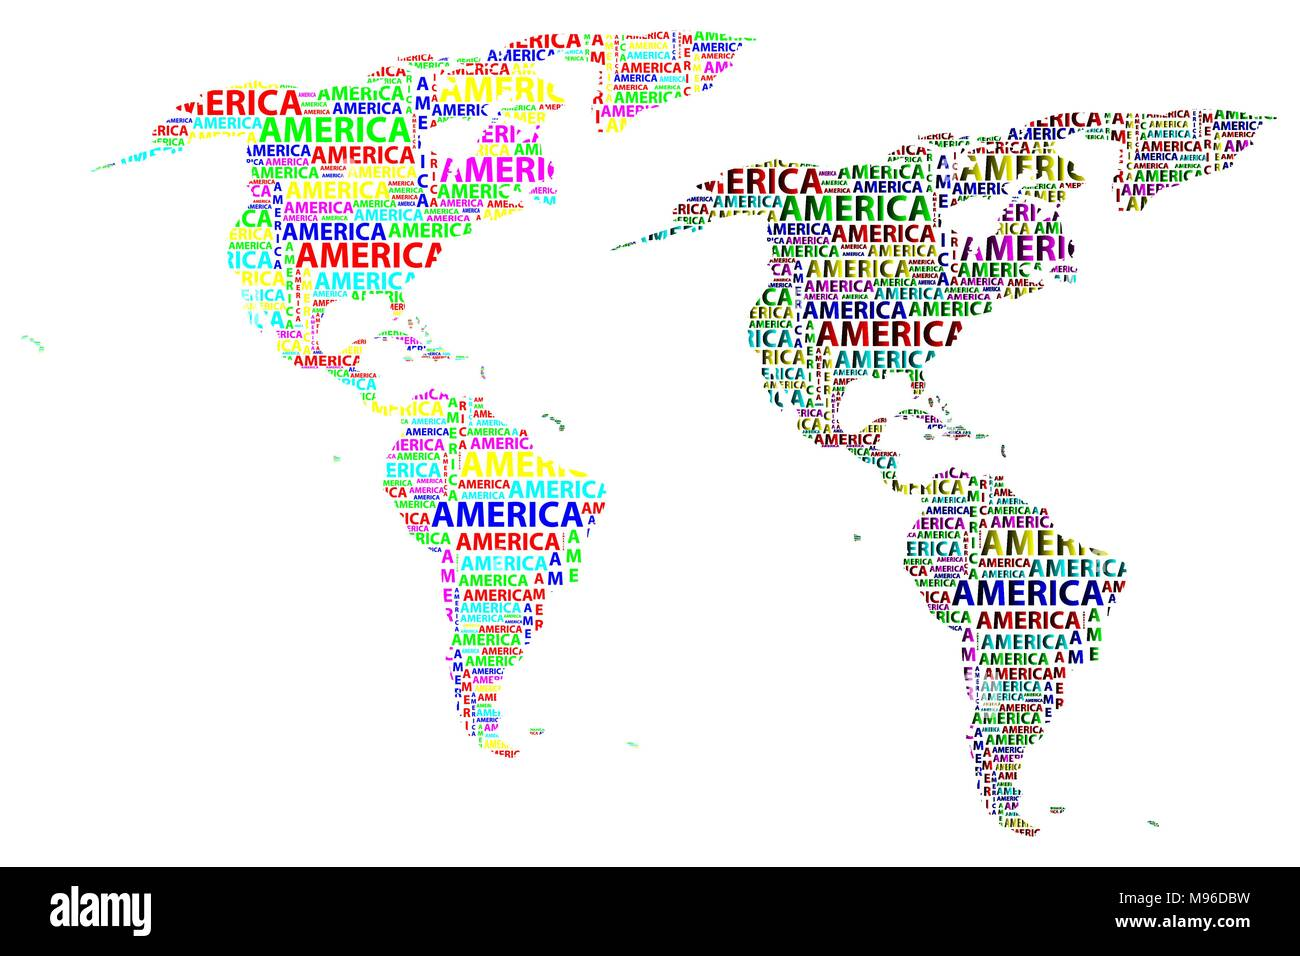 sketch america letter text continent america word in the shape of